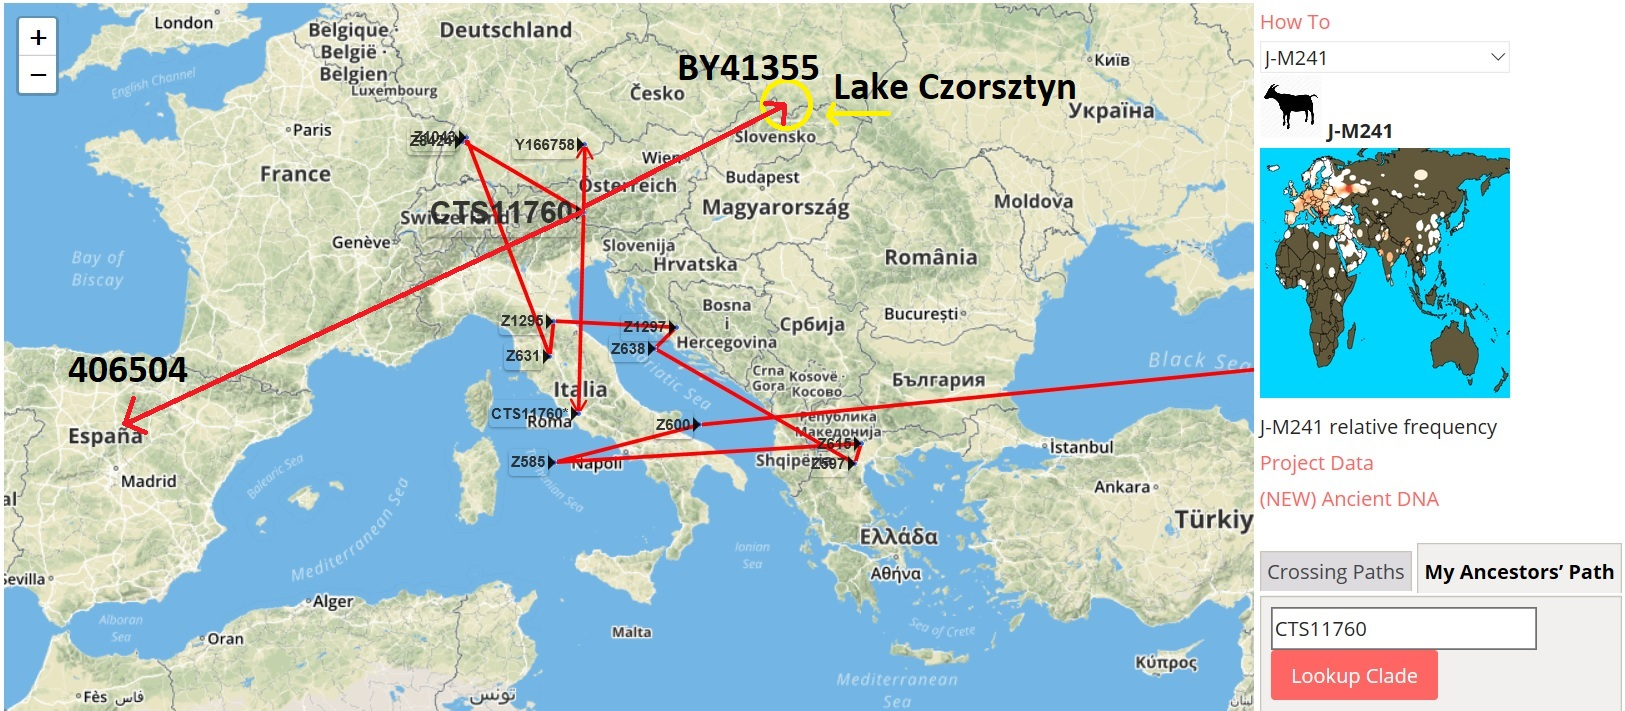 J-CTS11760 Distribution Fits Celtic Pattern in Central Europe